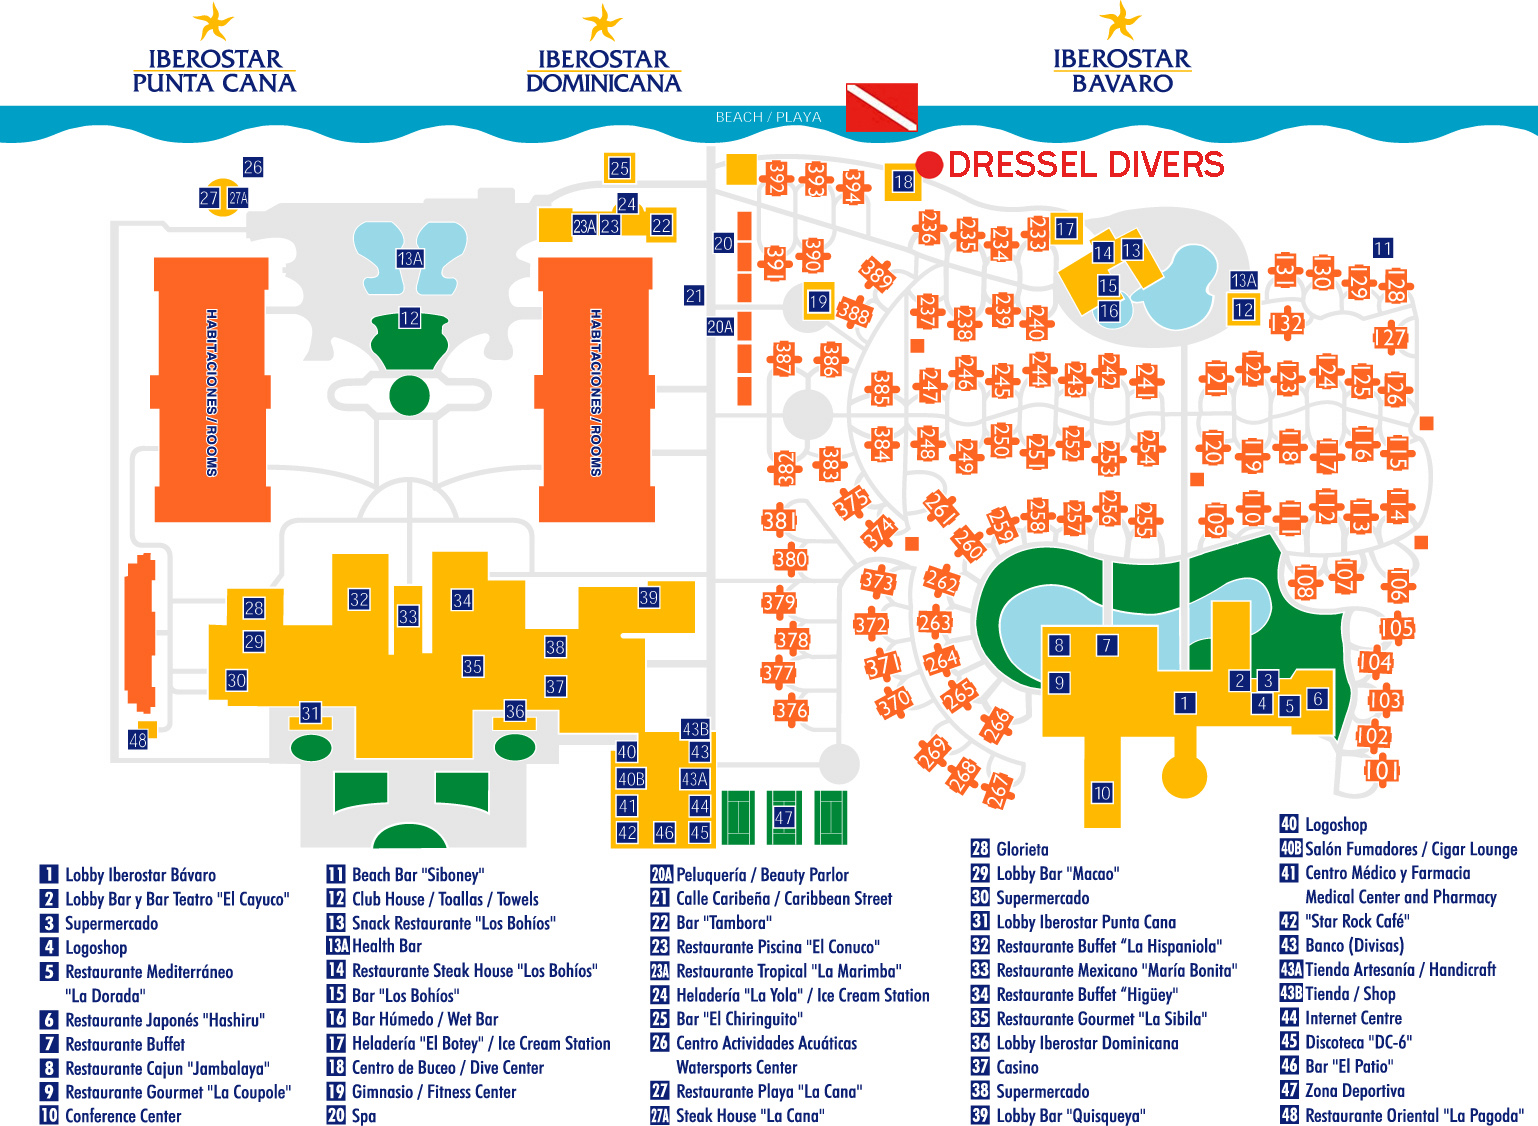 IBEROSTAR PUNTA CANA ALL INCLUSIVE | IBEROSTAR VACATION ... on viva wyndham dominicus palace map, iberostar hacienda dominicus bayahibe, catalonia gran dominicus resort layout map, iberostar grand hotel bavaro map, iberostar hacienda dominicus la romana, iberostar paraiso resort map, iberostar la romana map, iberostar paraiso del mar map, iberostar cozumel map, iberostar hacienda dominicus room view, viva wyndham dominicus beach map, iberostar hacienda dominicus all inclusive, hacienda del mar map, iberostar paraiso beach map, iberostar tucan map, iberostar rose hall suites map, iberostar paraiso lindo map, iberostar mexico map, iberostar rose hall beach map,